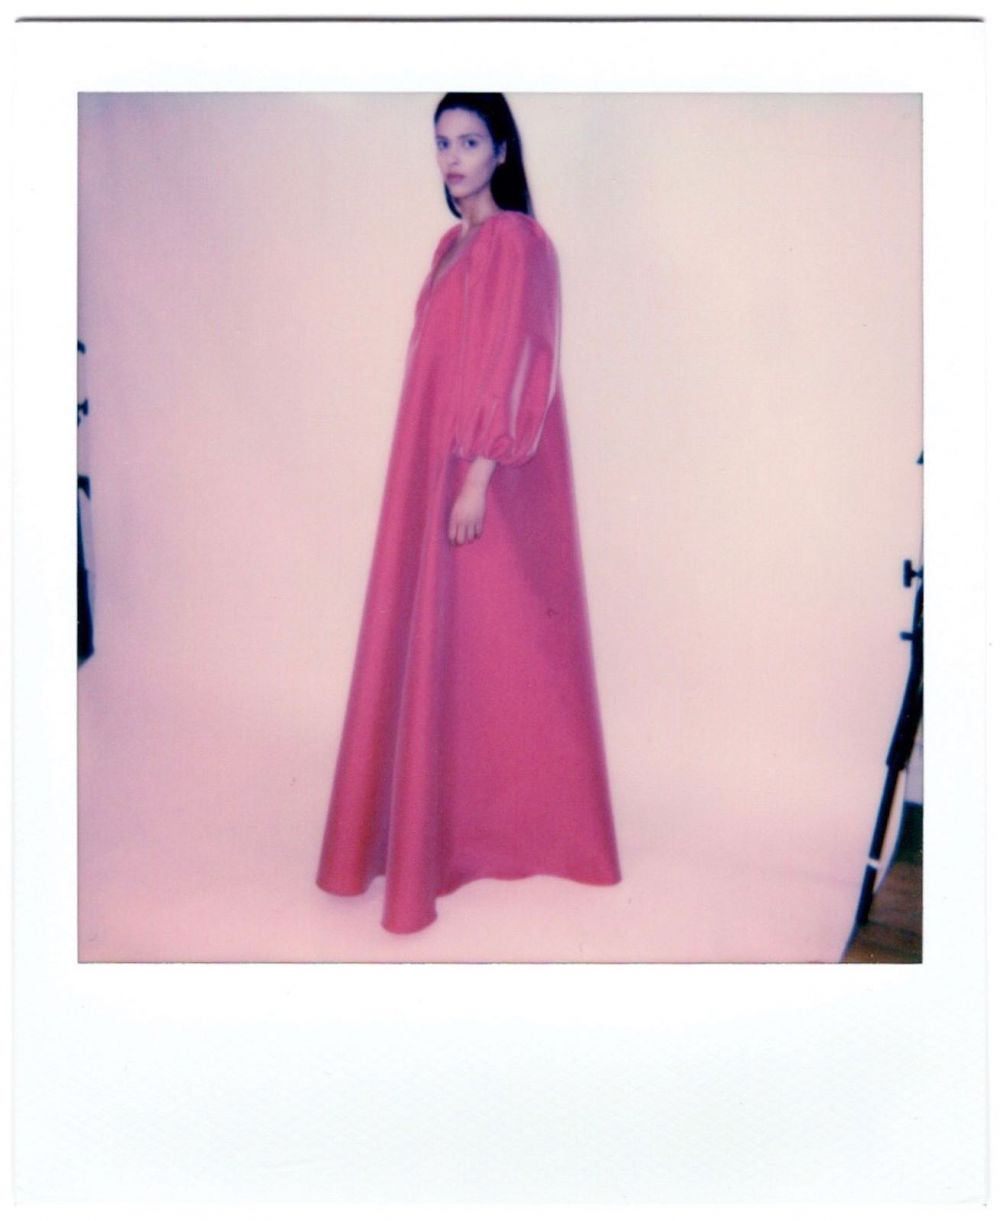 ♥️PRESPRING21 COLLECTION LAUNCHING AT SELECTED STORES WORLDWIDE.♥️ Polaroids taken from our Paris Pre-quarantaine showroom last March. Seems so long ago.💭 THE GEORGE DRESS. #PS21